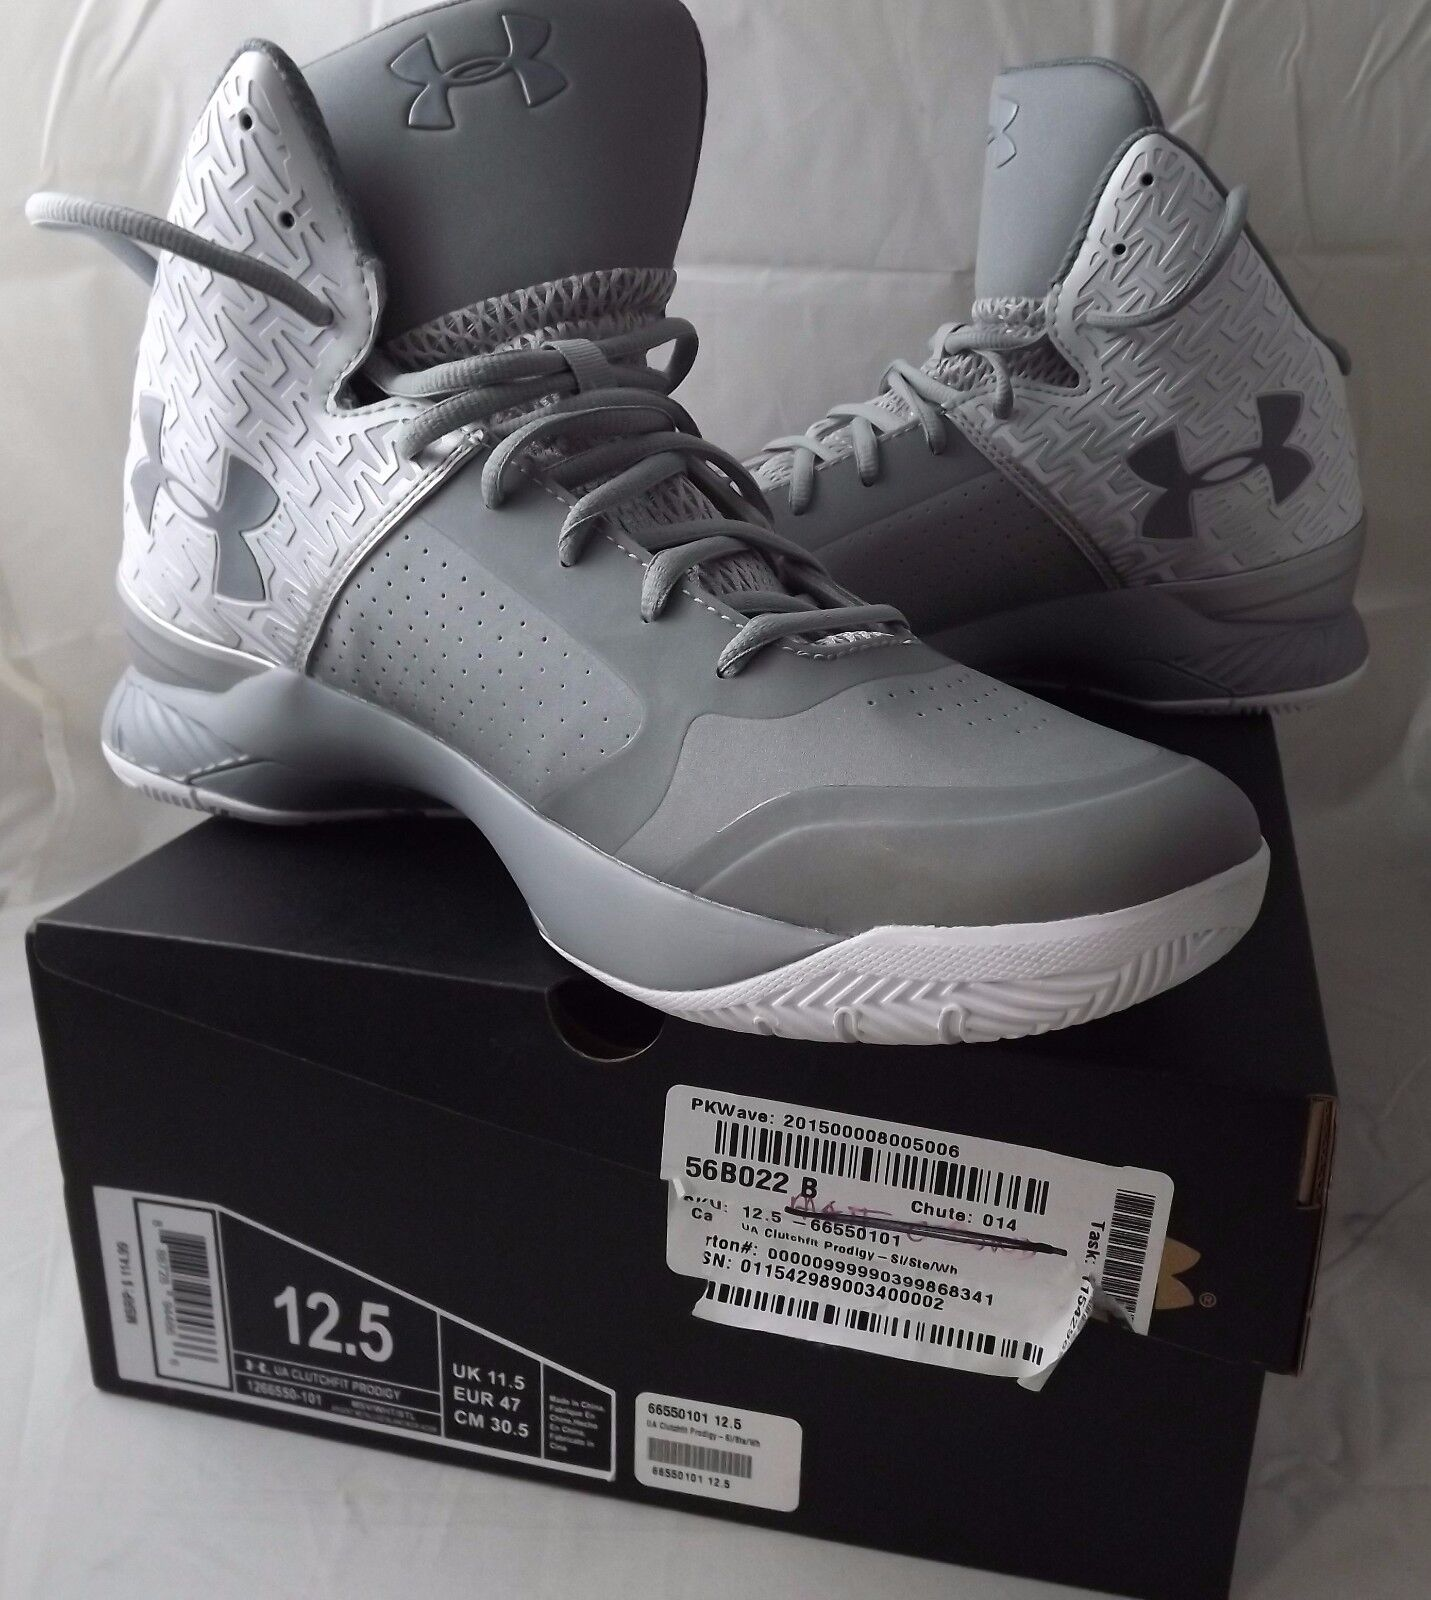 New under baloncesto armour UA clutchfit Prodigy 12,5 zapatillas de baloncesto under blanco gris plata 031763